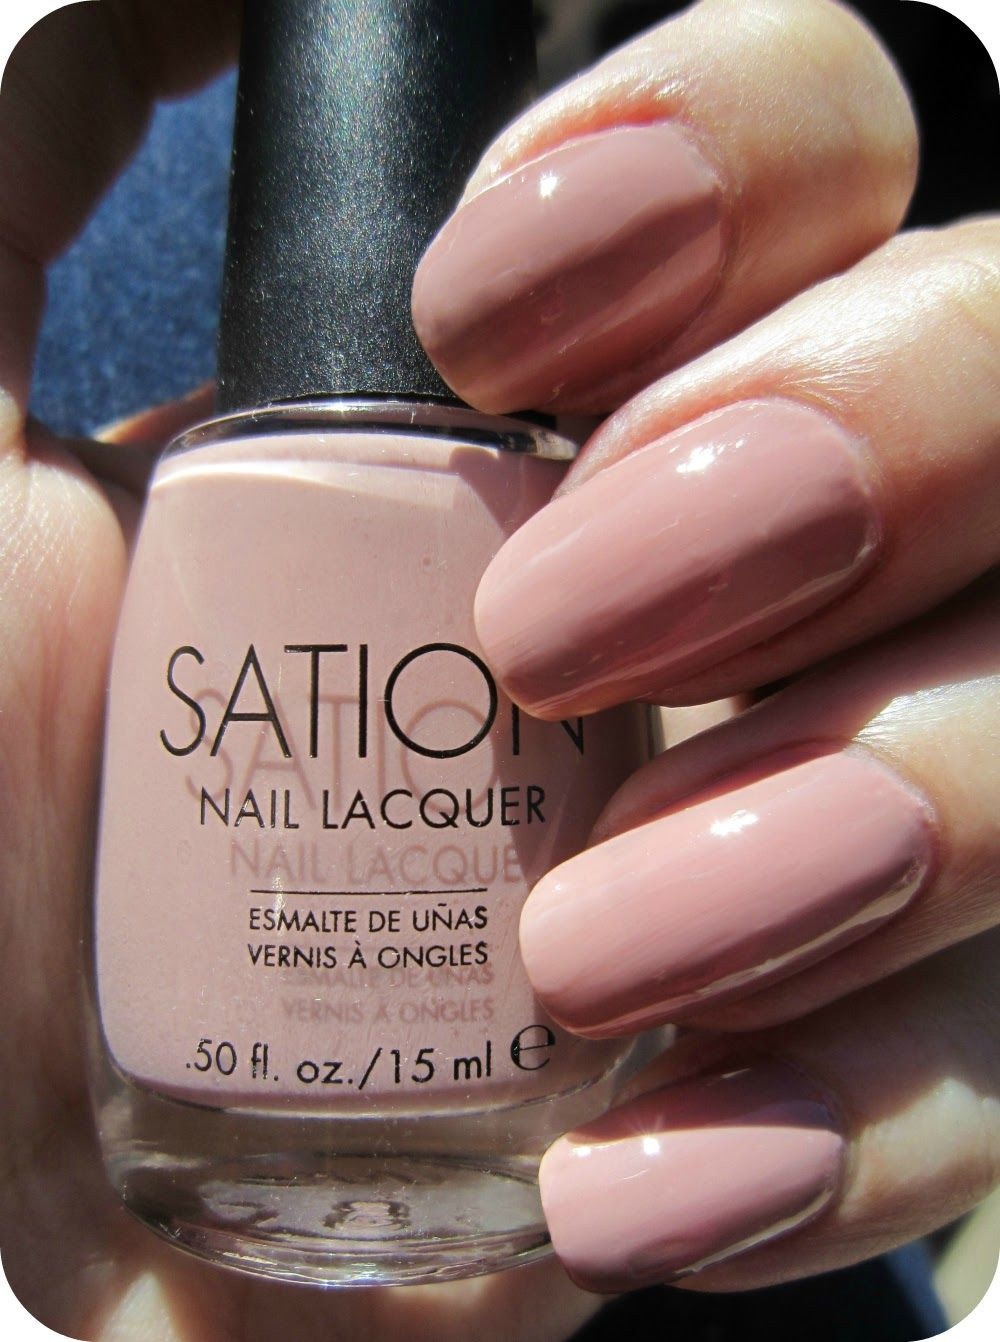 Sation Nail Polish : sation, polish, Sation's, Beige, Lacquer, Polish,, Nails,, Nails